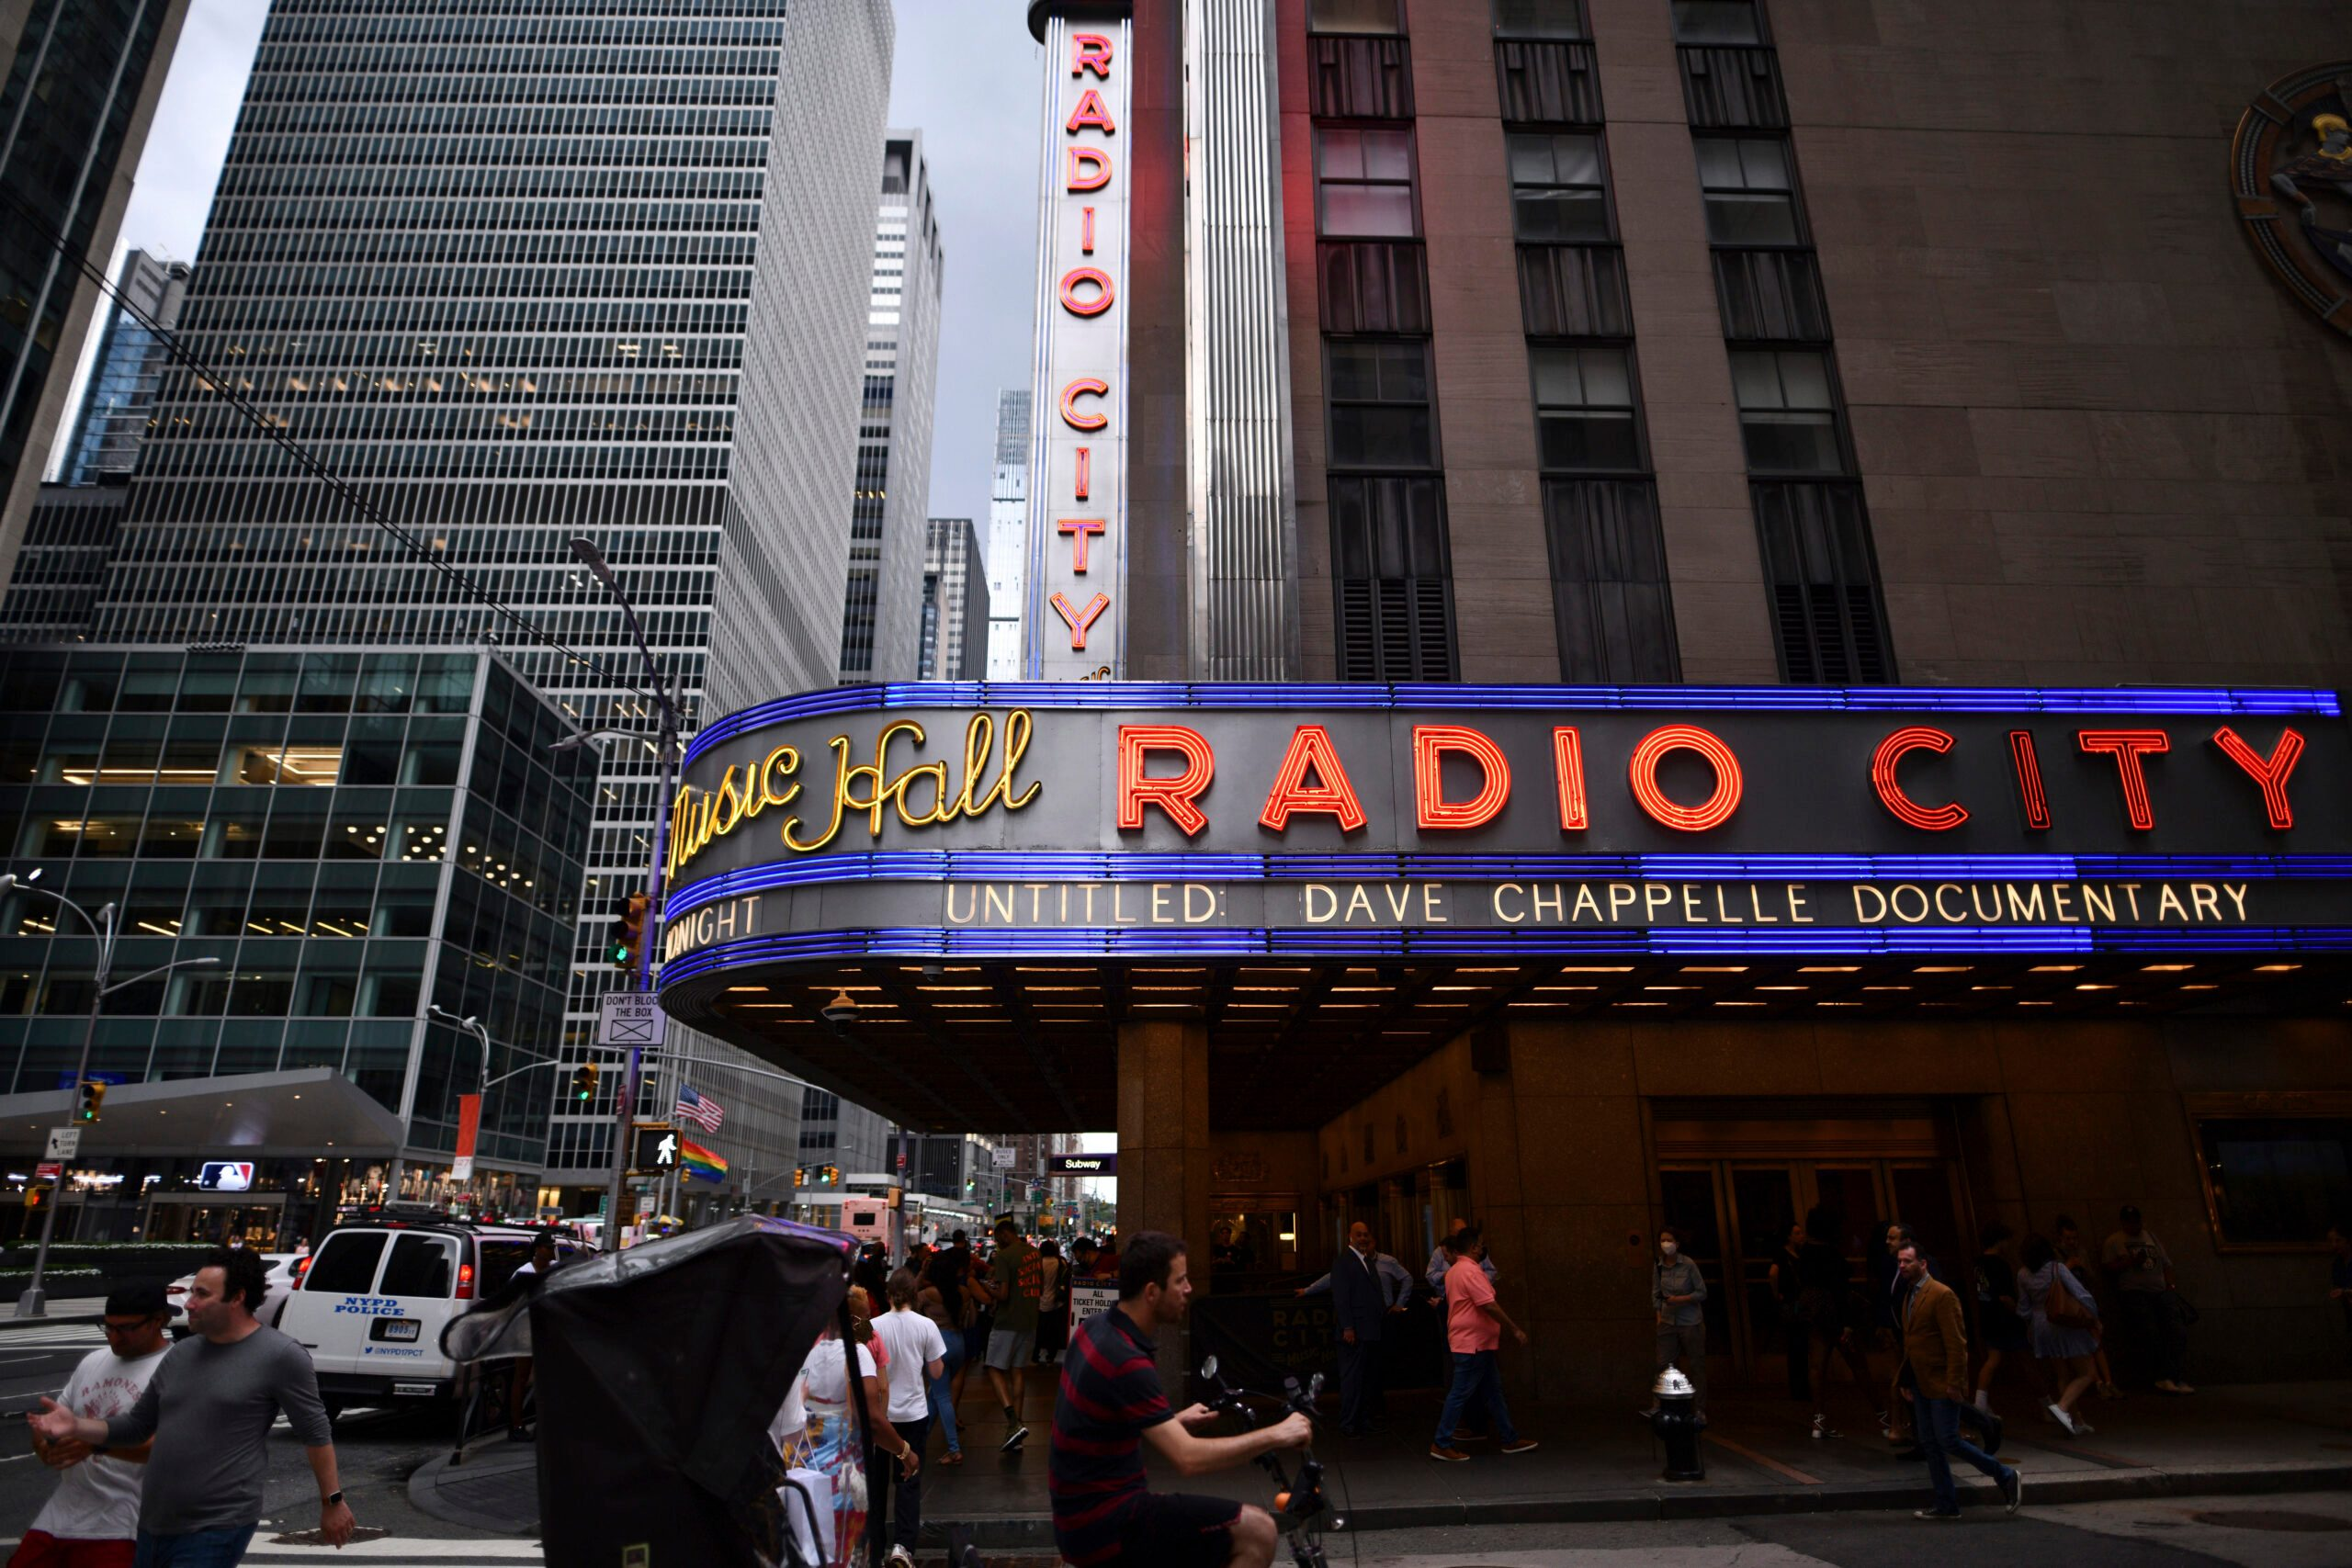 15 Months Later, Radio City Reopens with Dave Chappelle - snopes